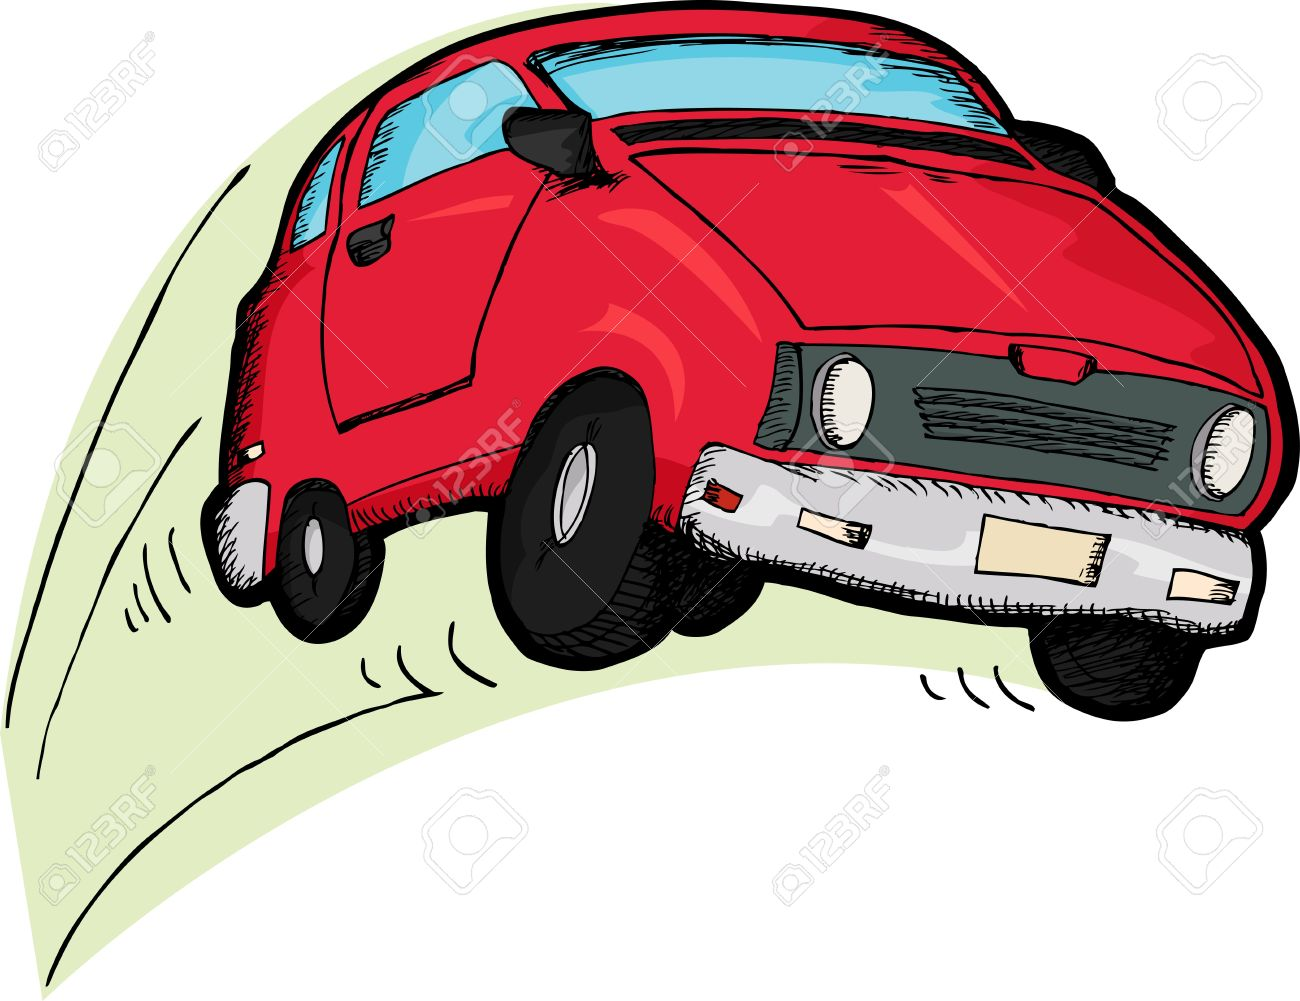 Little Red Car >> Little Red Car Cartoon Bouncing Over White Background